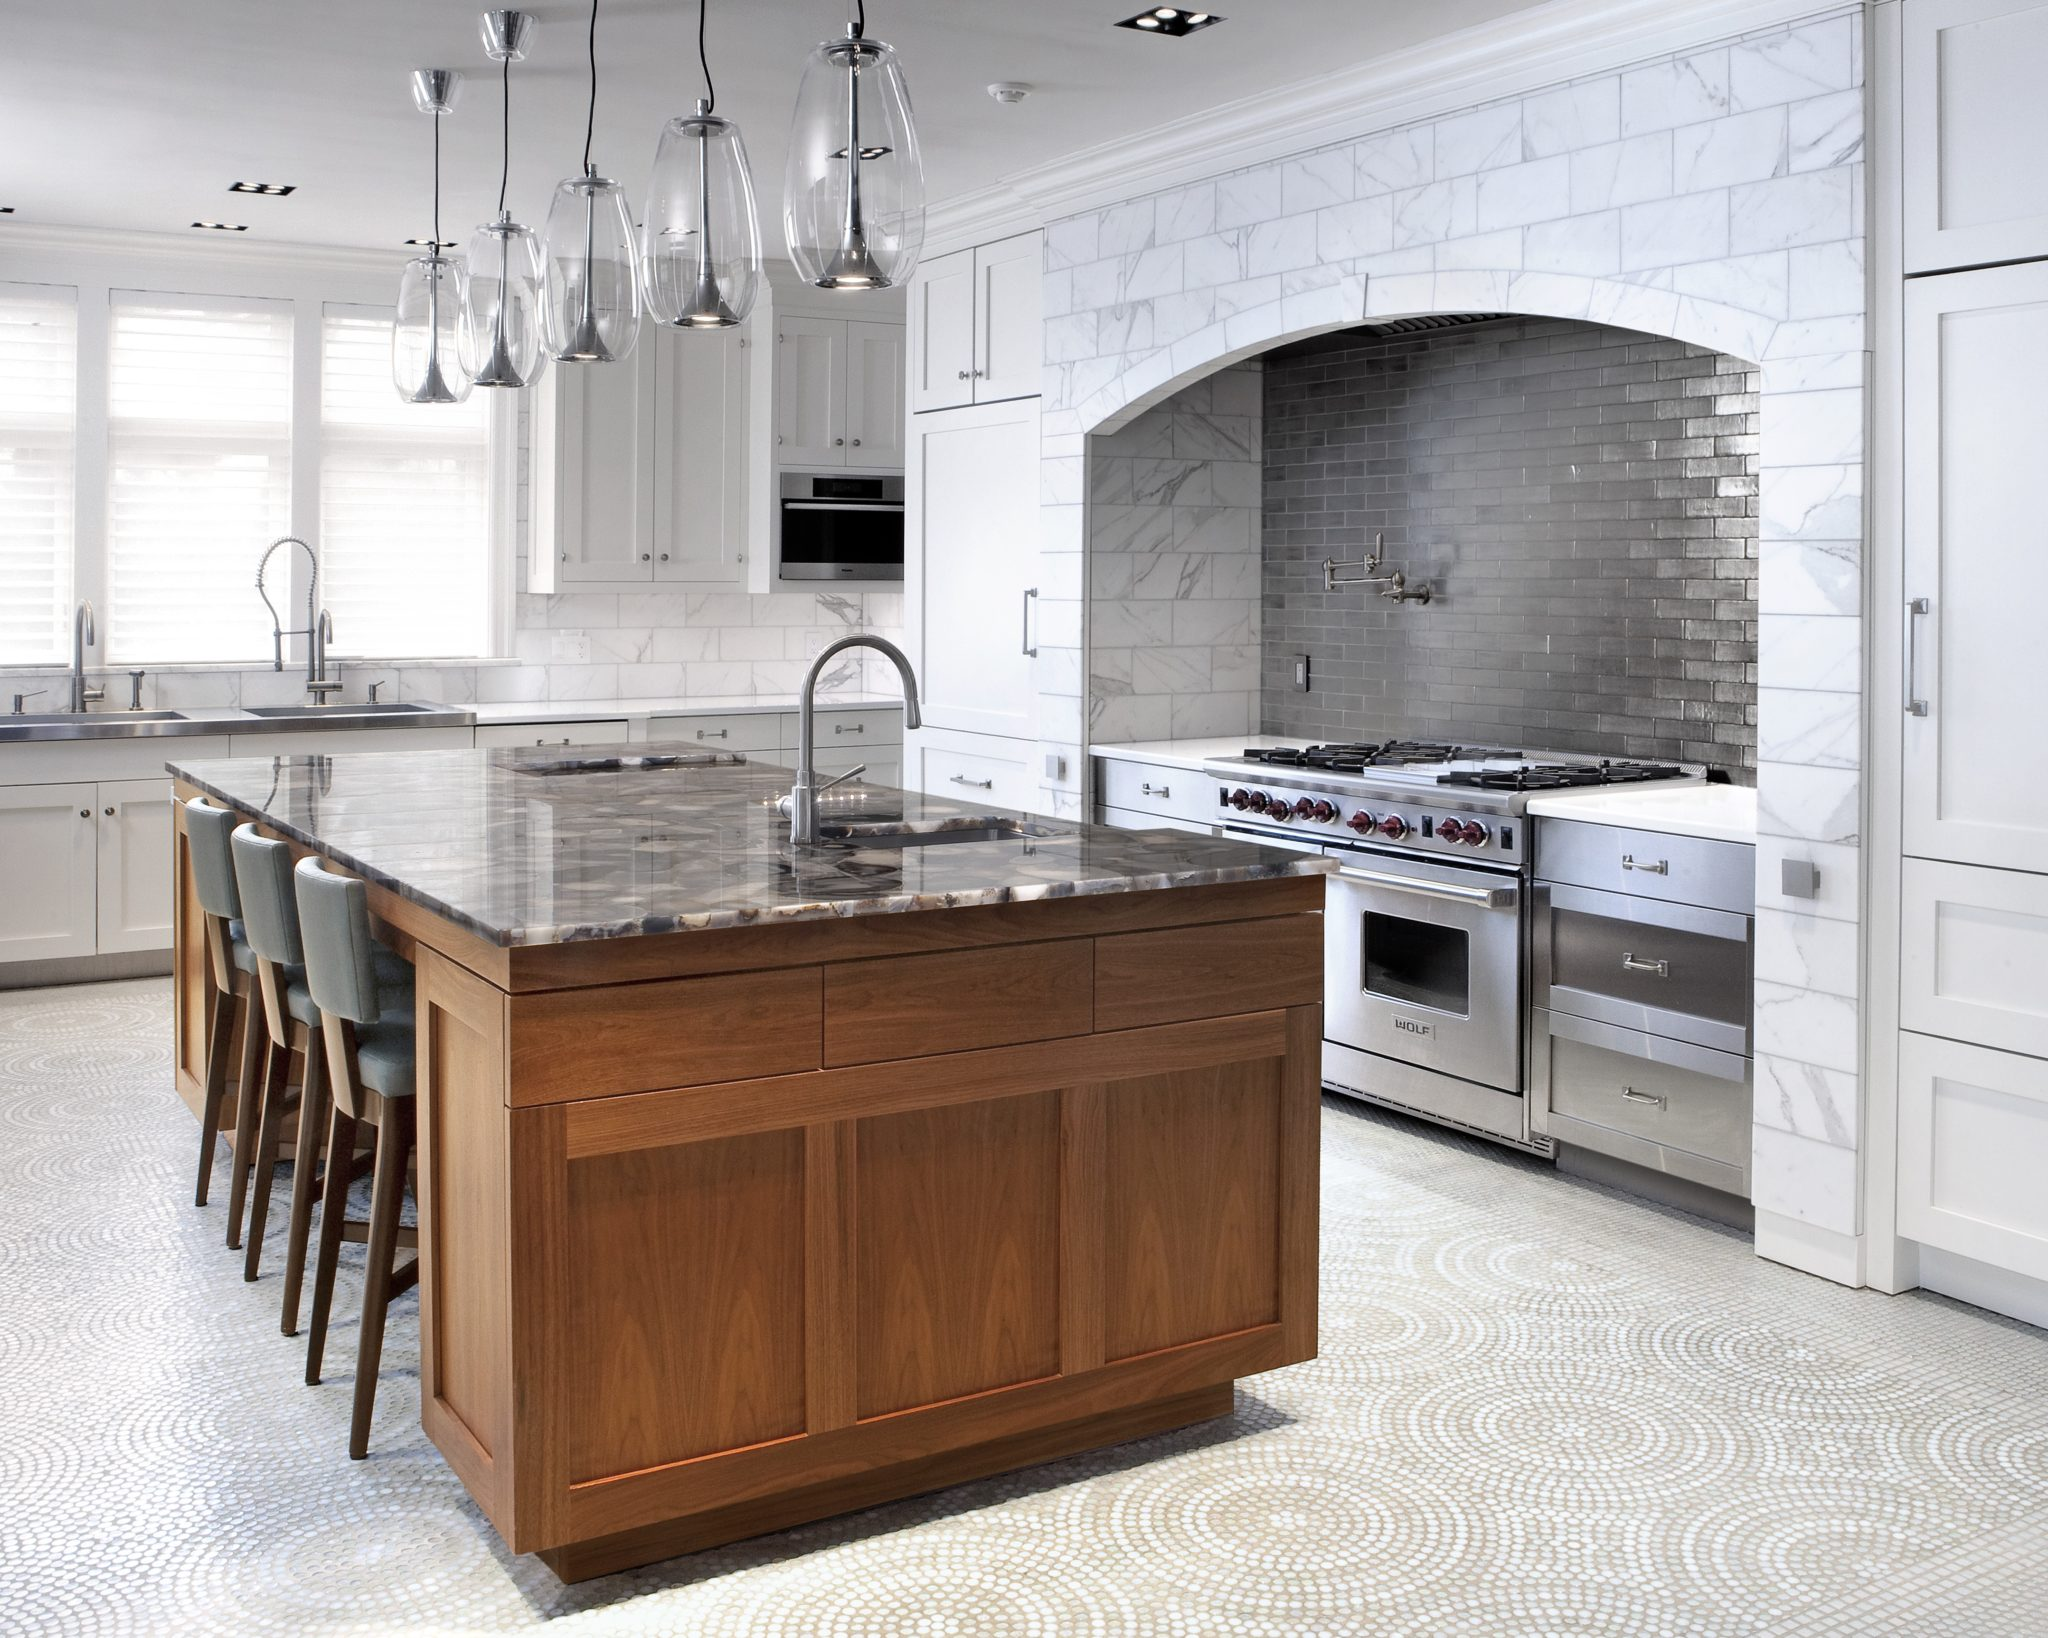 Kitchen with mosaic floor by St. Charles of New York